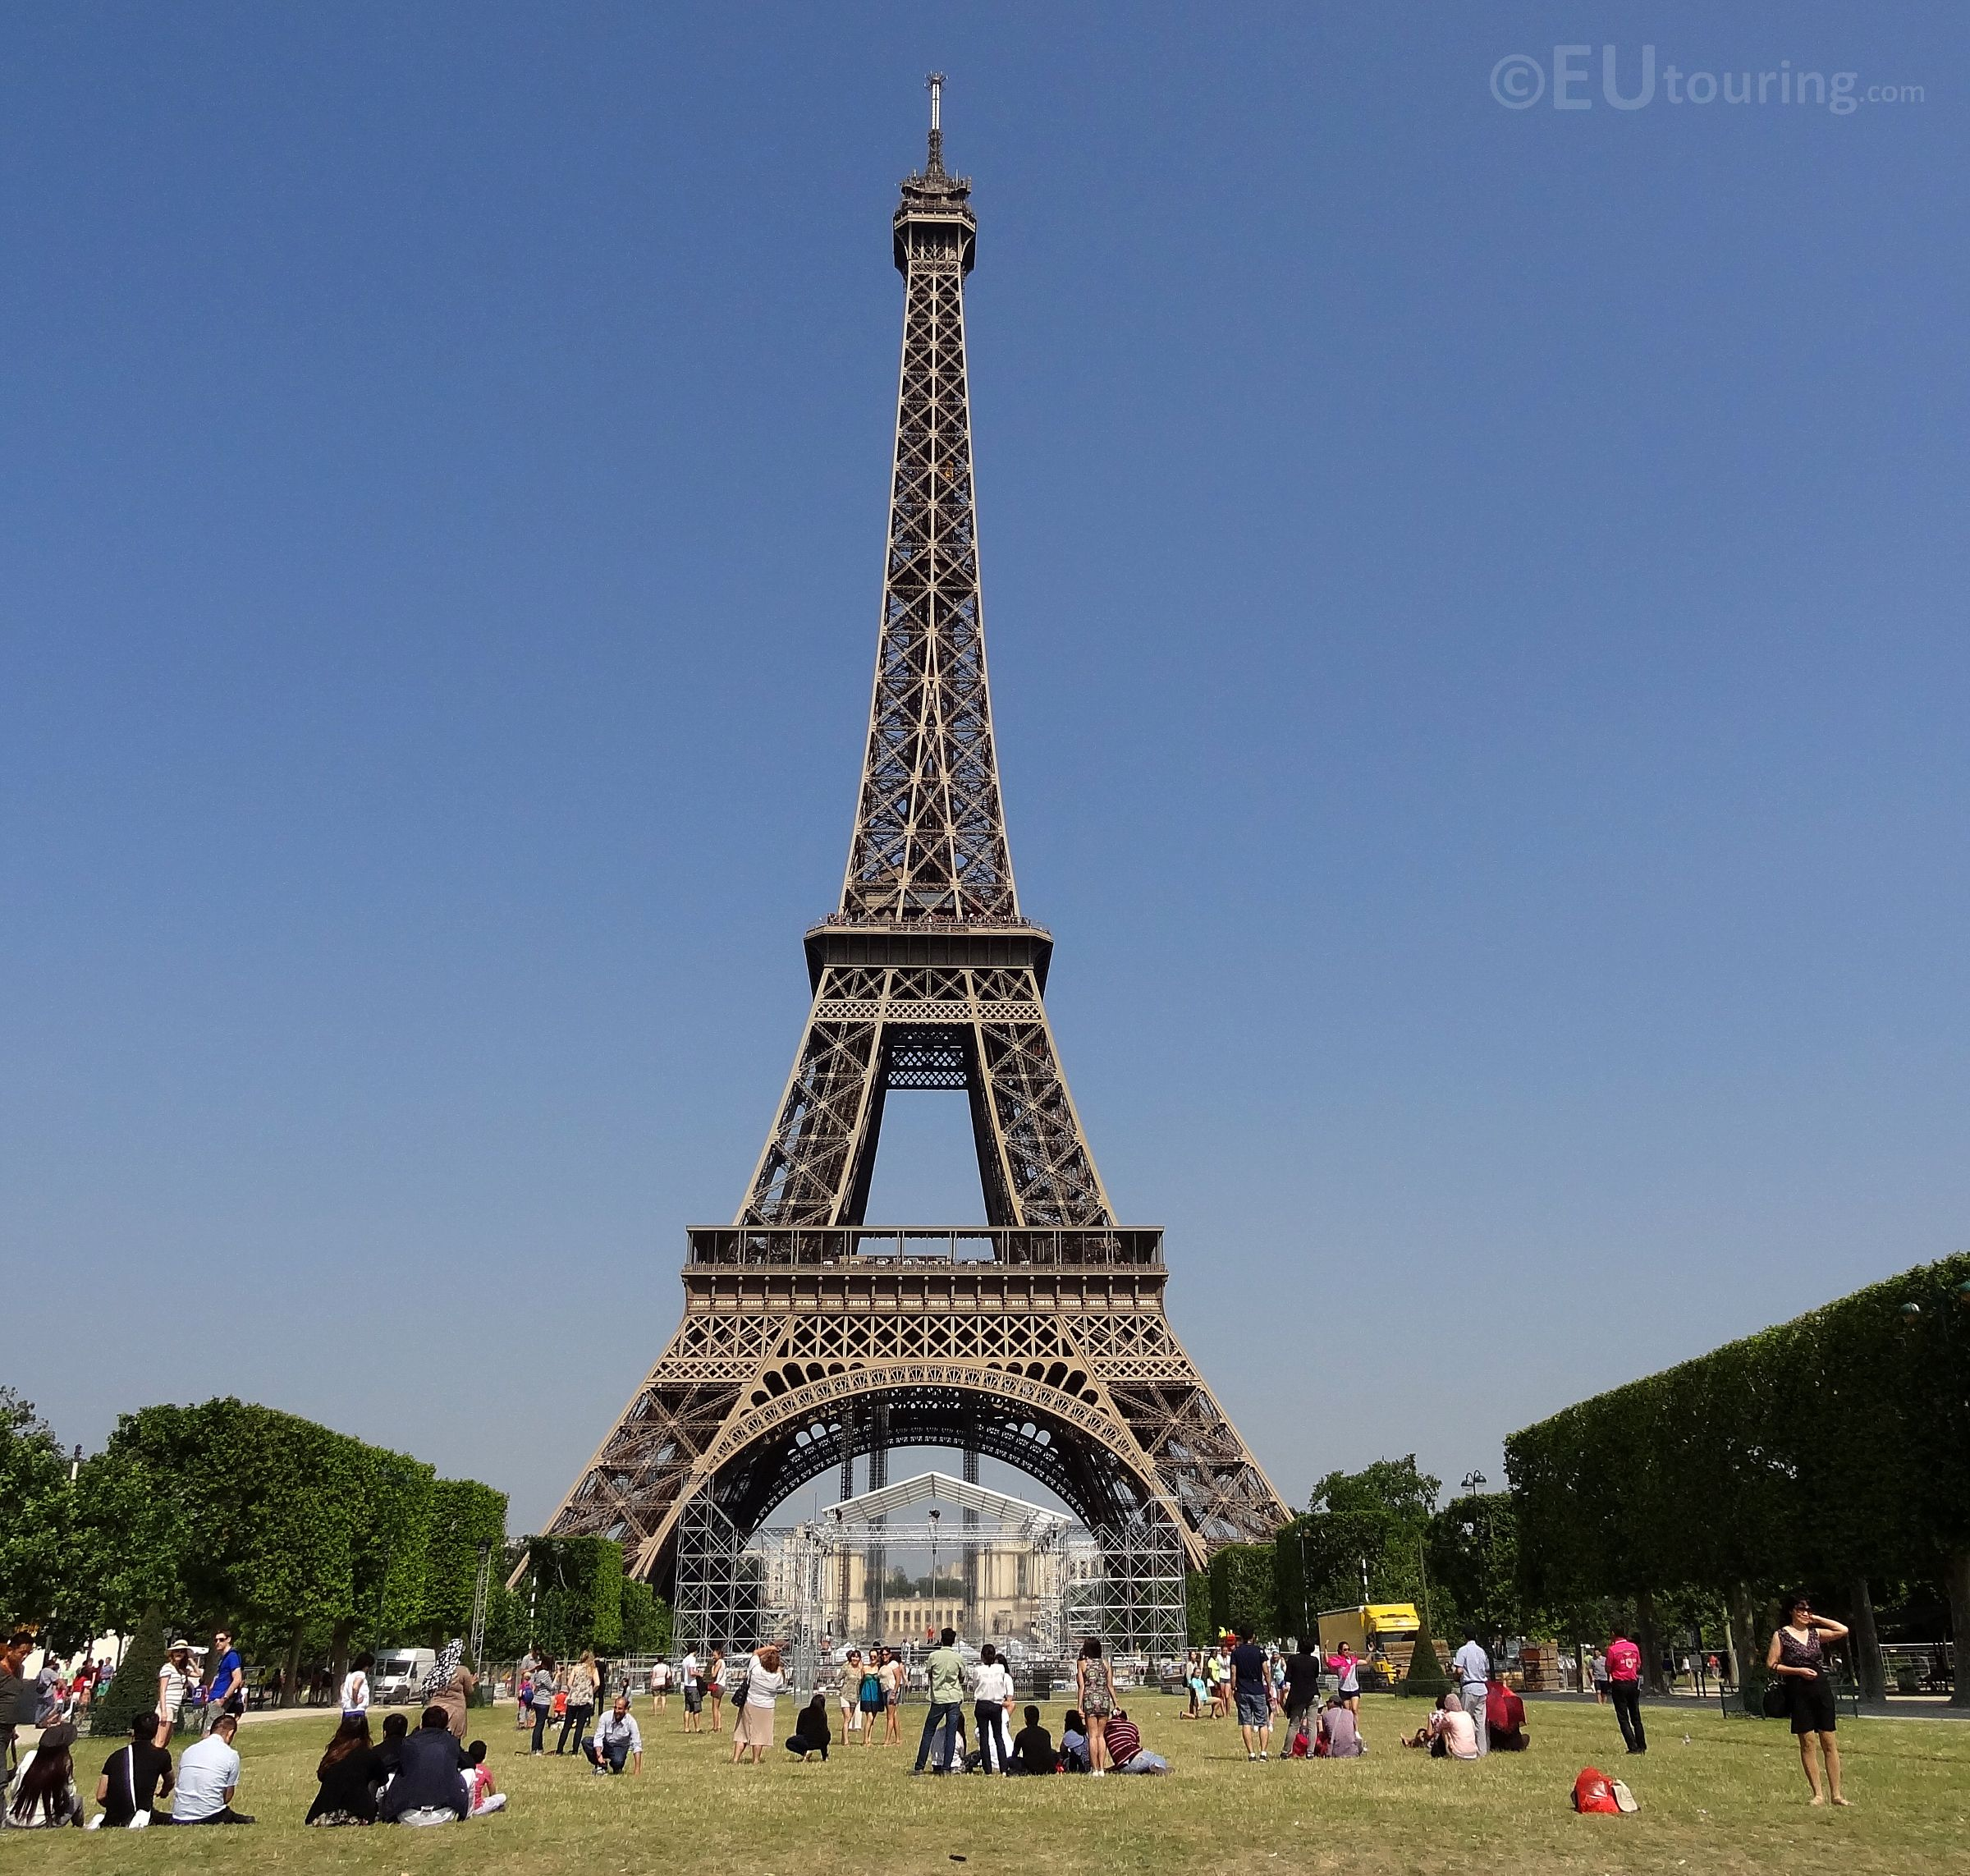 The Champ de Mars Park on one side of the Eiffel Tower has